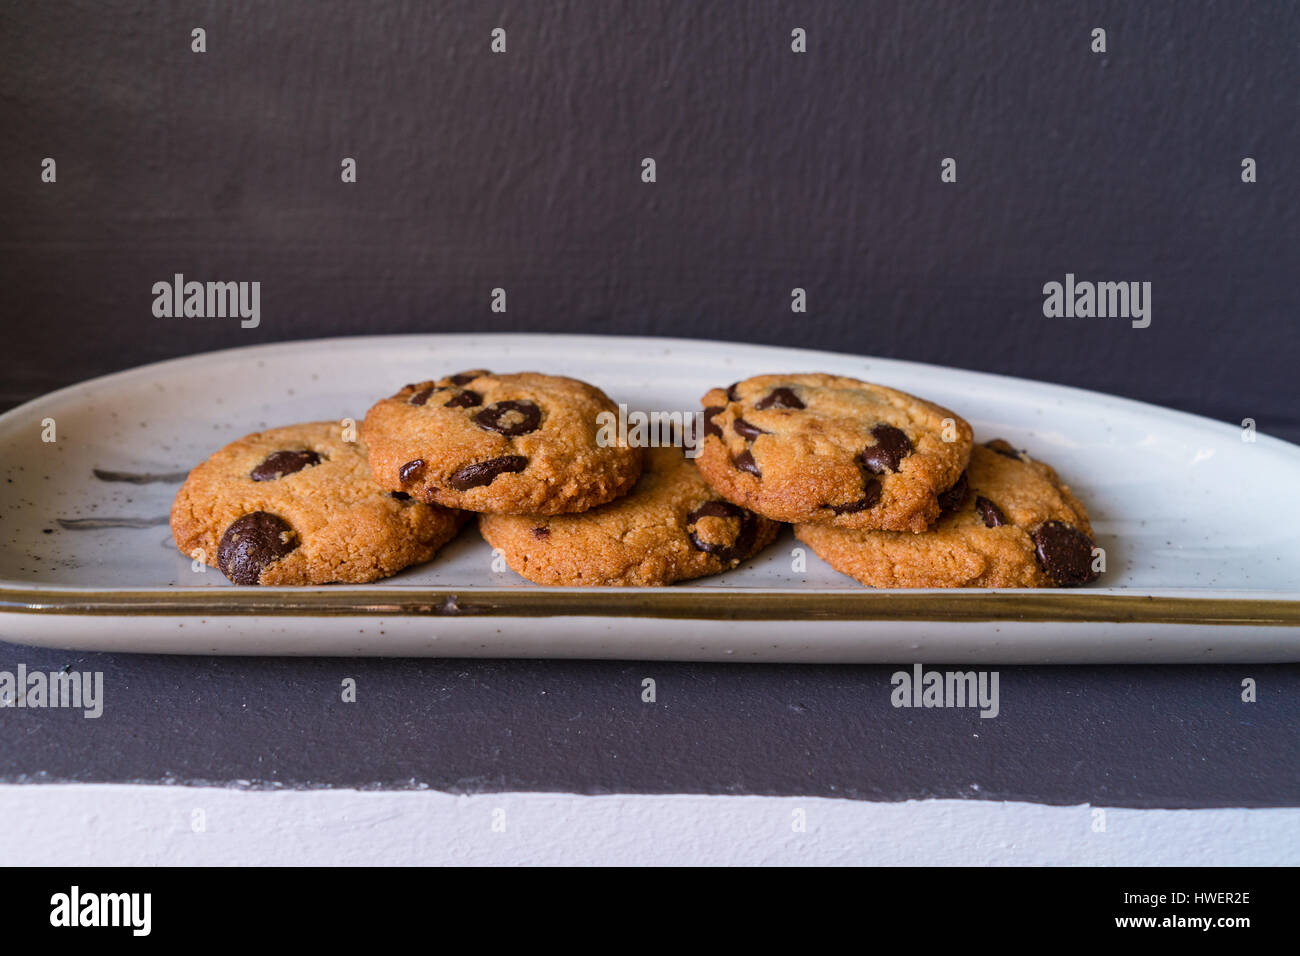 Chocolate Chip Cookies on Japanese Ceramic Plate - Stock Image